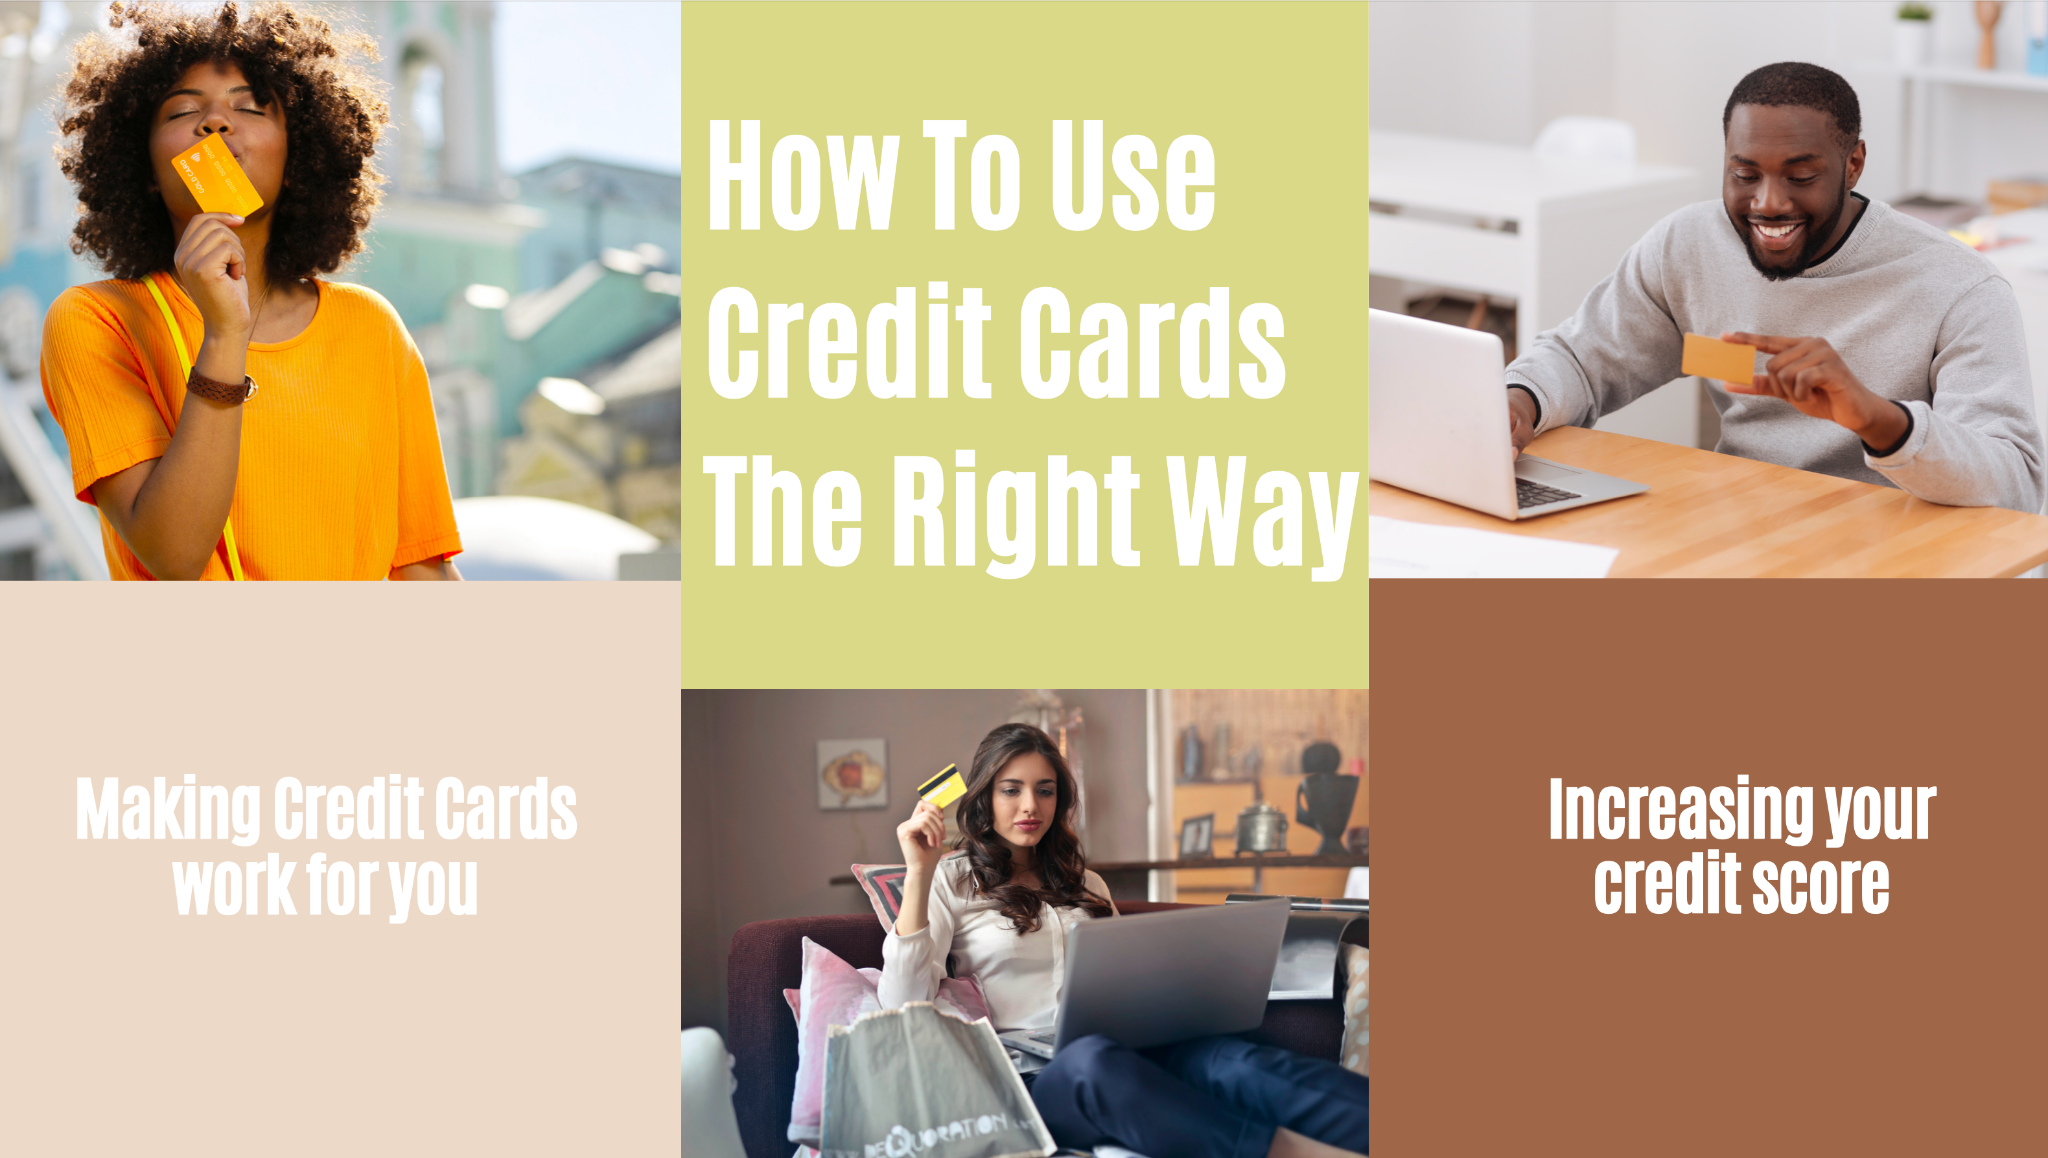 How To Use Credit Cards The Right Way